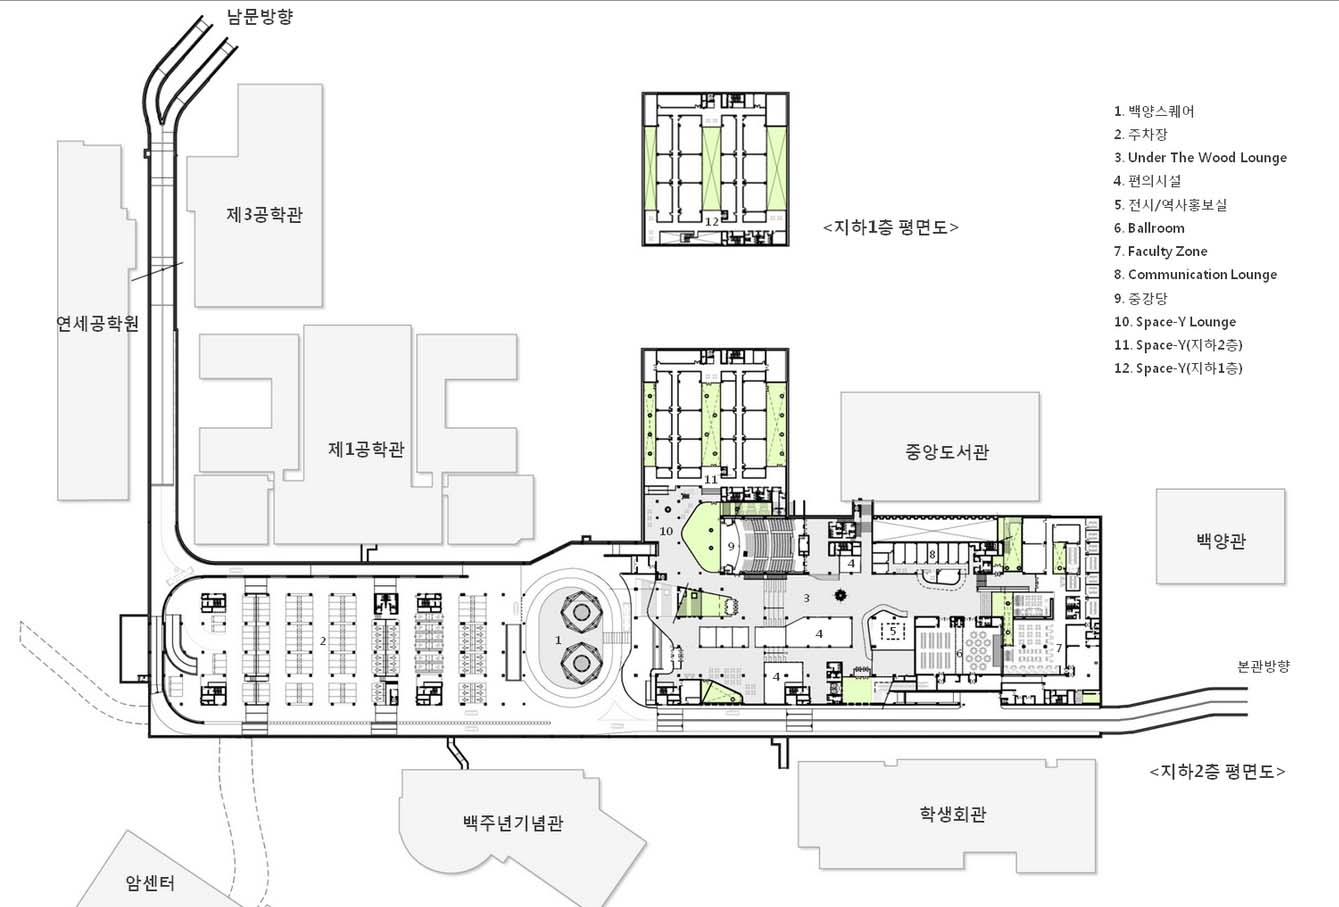 Yonsei Campus Construction Plan